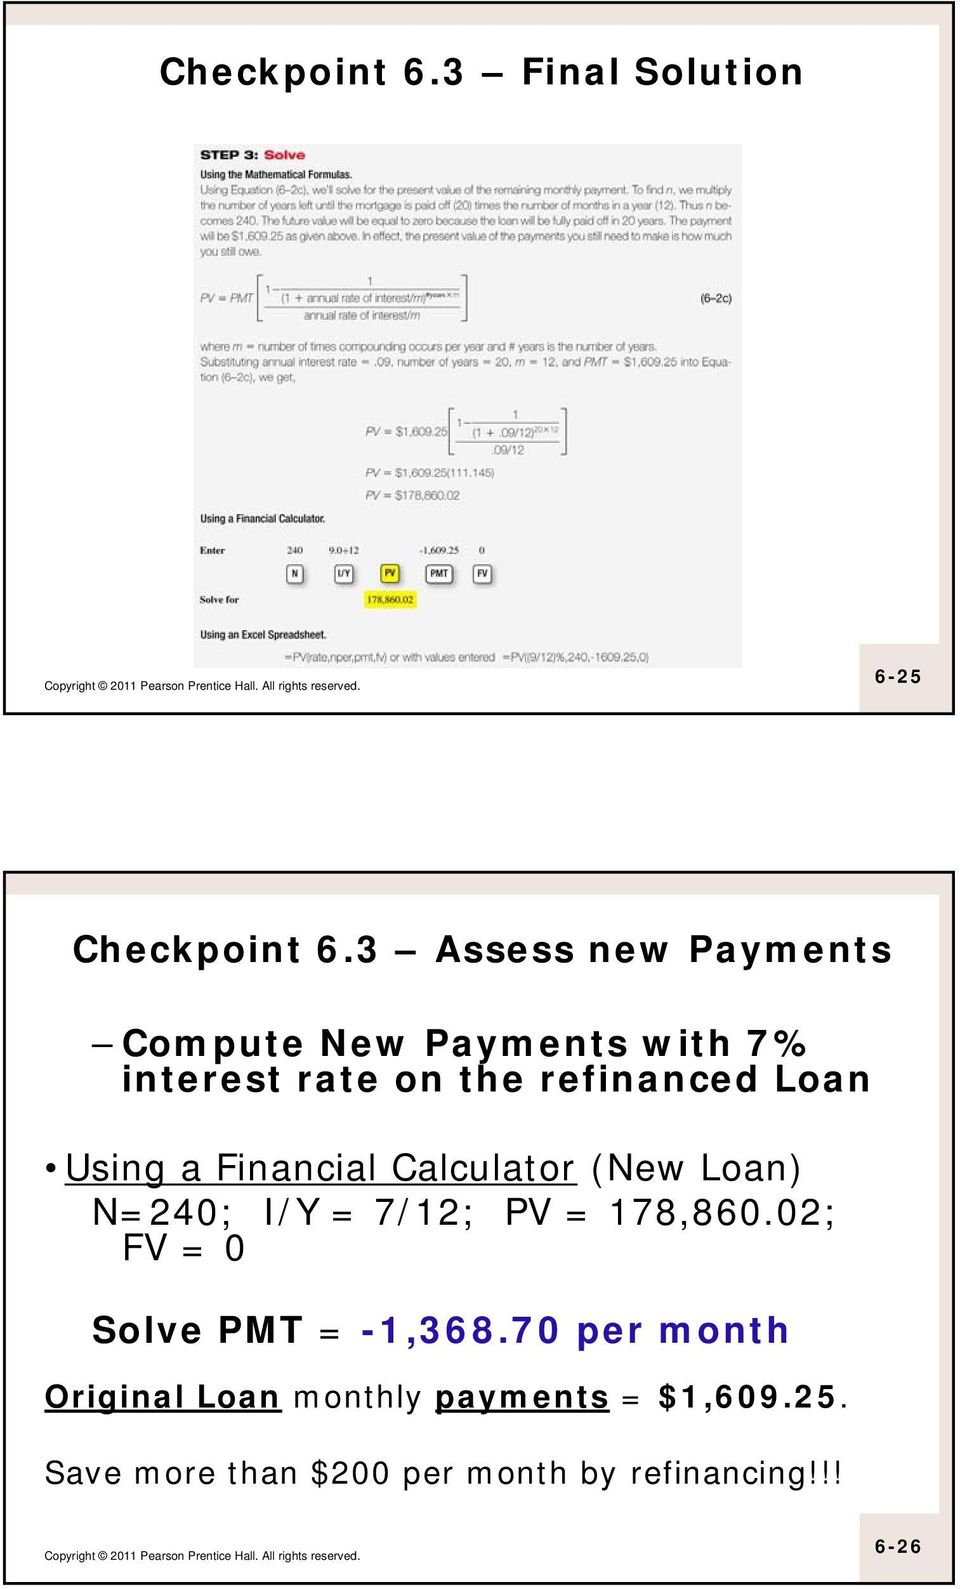 Loan Using a Financial Calculator (New Loan) N=240; I/Y = 7/12; PV = 178,860.